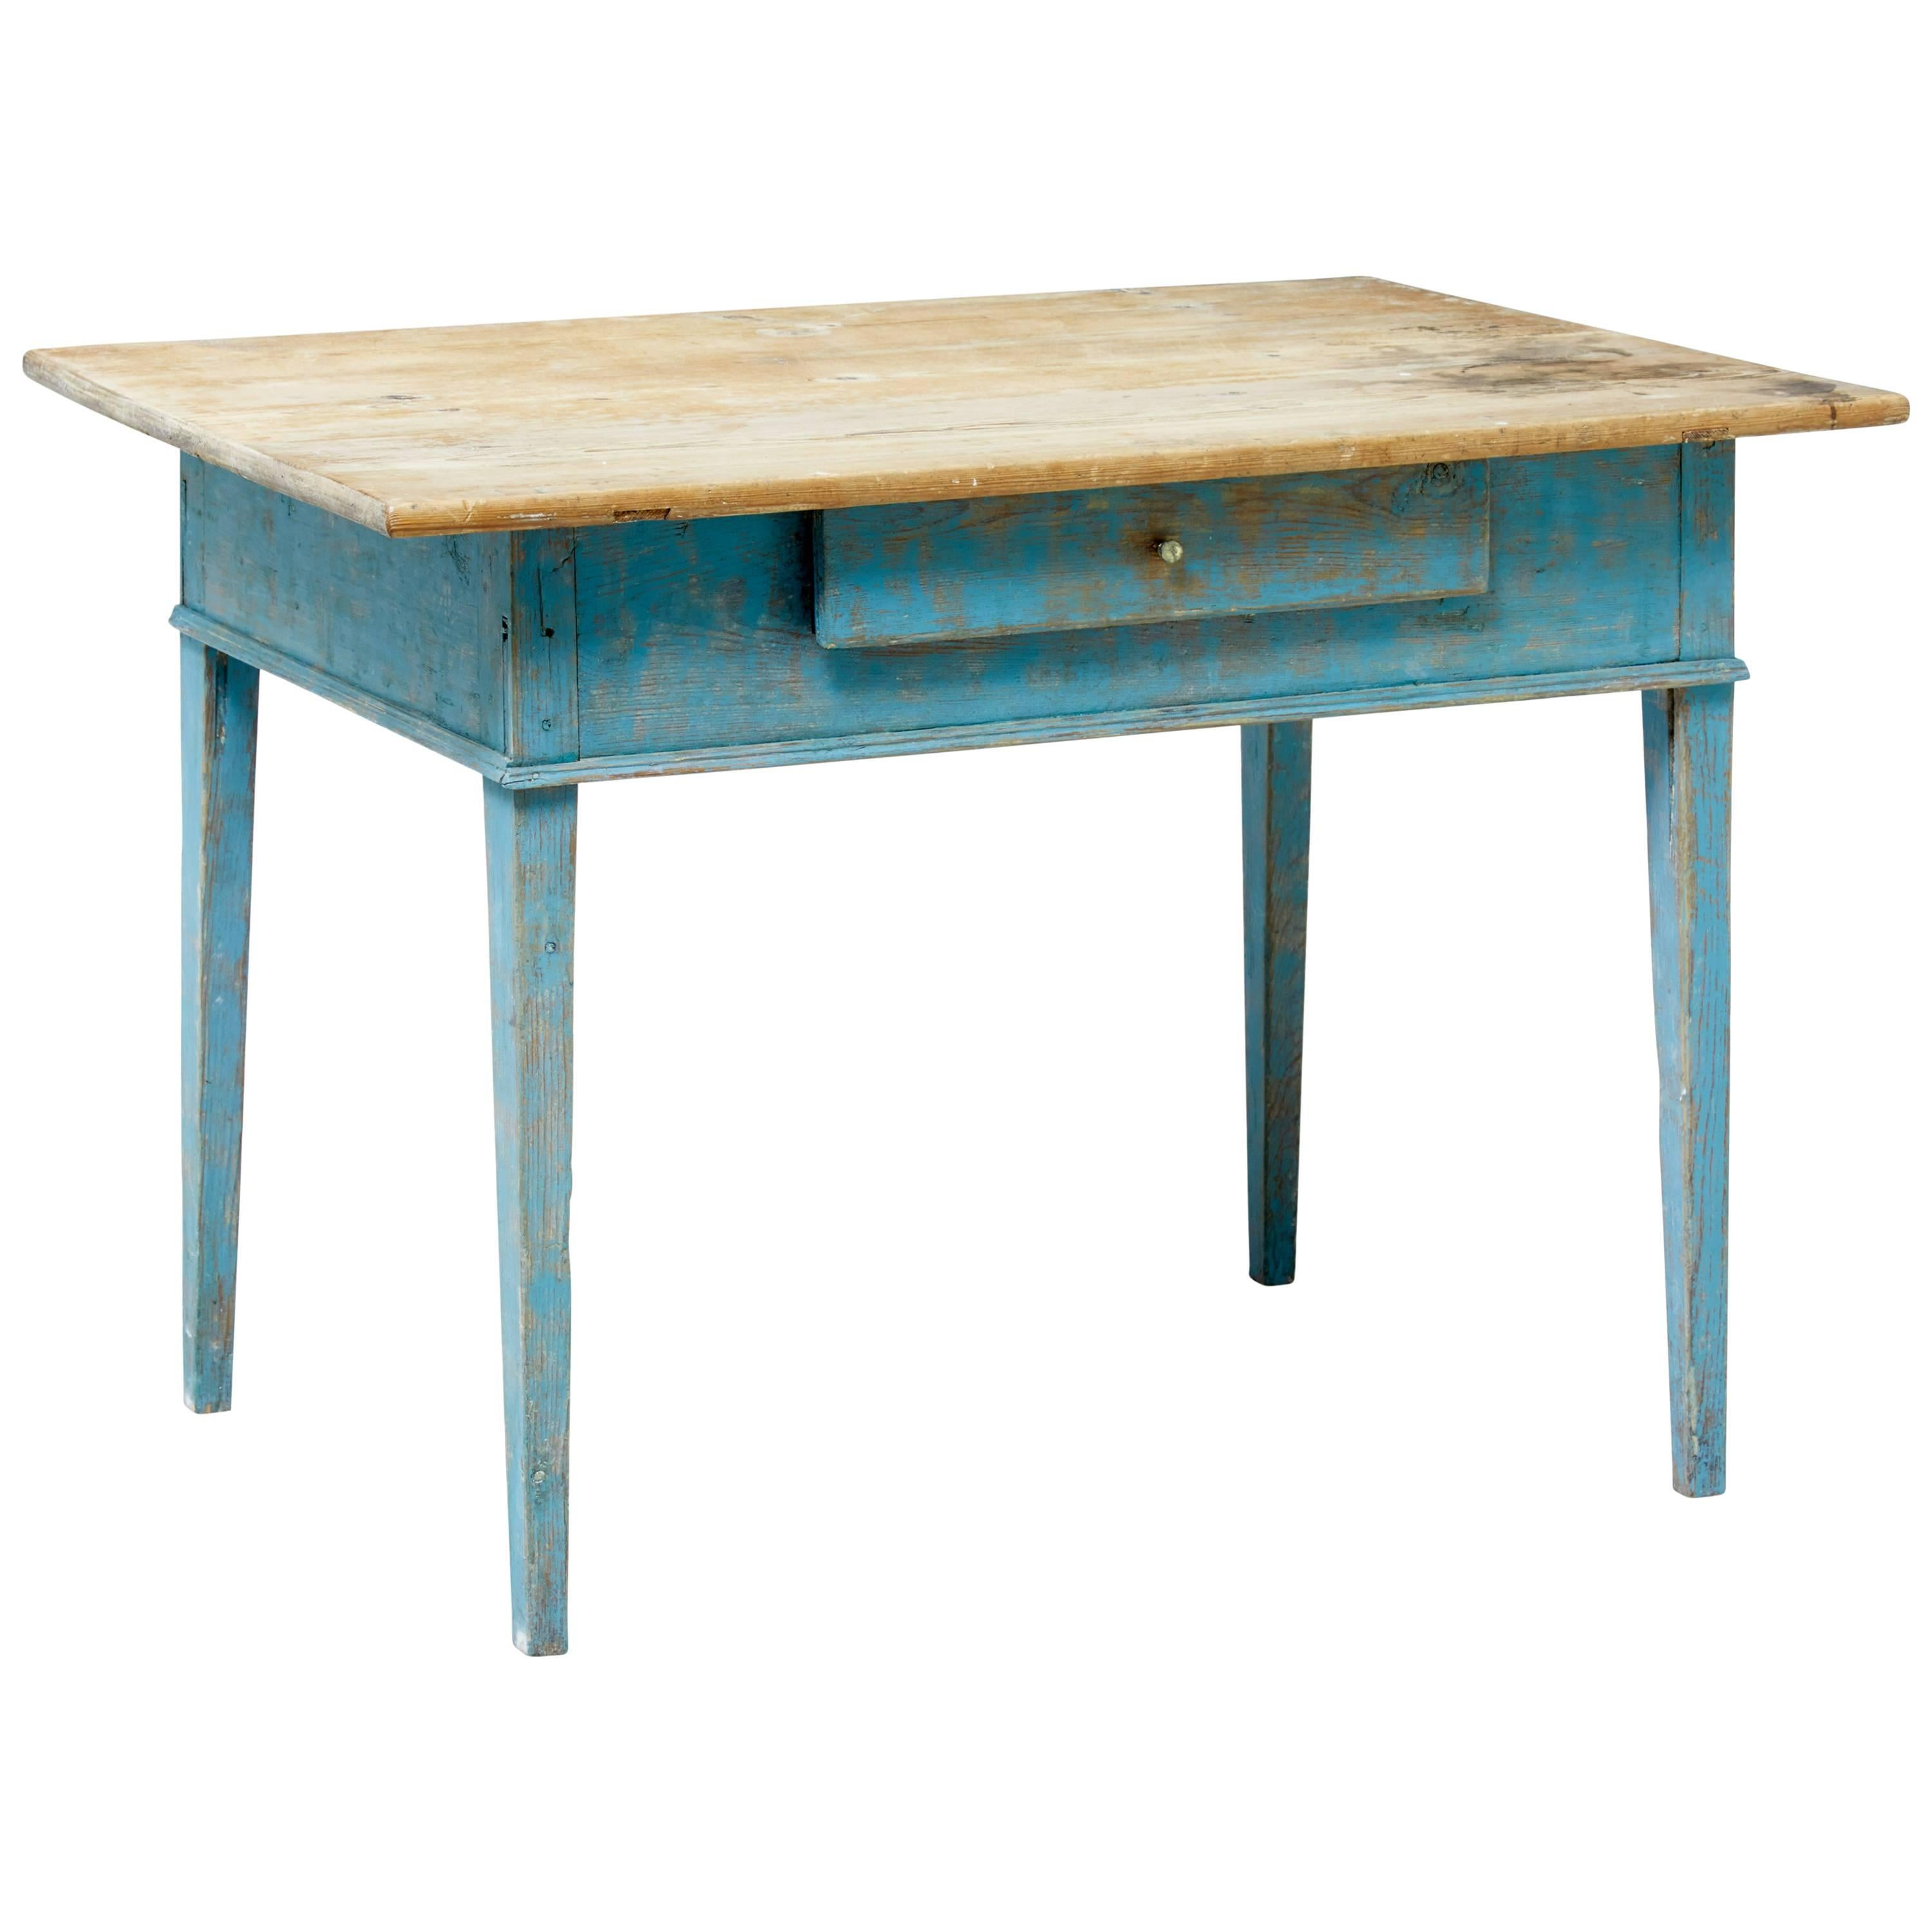 19th Century Rustic Swedish Walnut and Painted Kitchen Table For ...